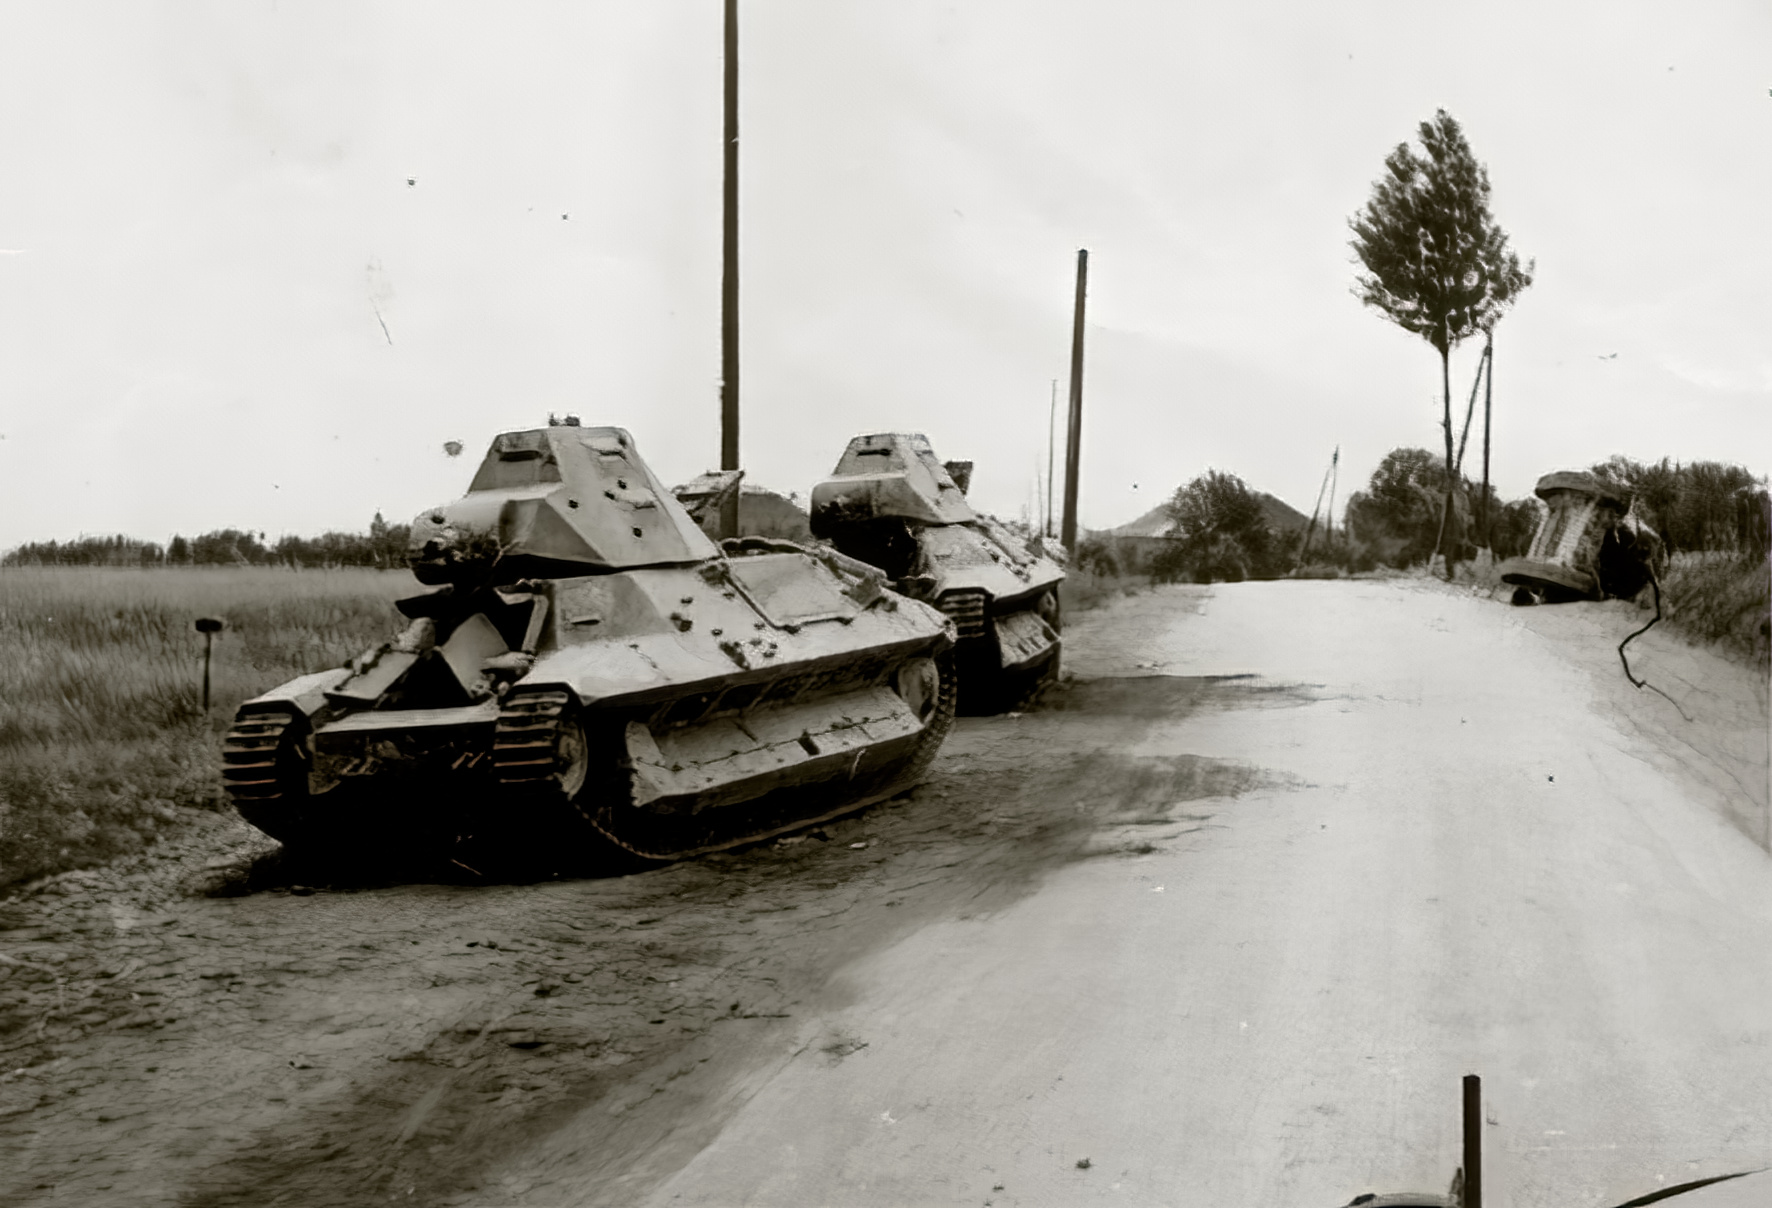 French Army Somua S35 abandoned during the battle of France May 1940 ebay 01